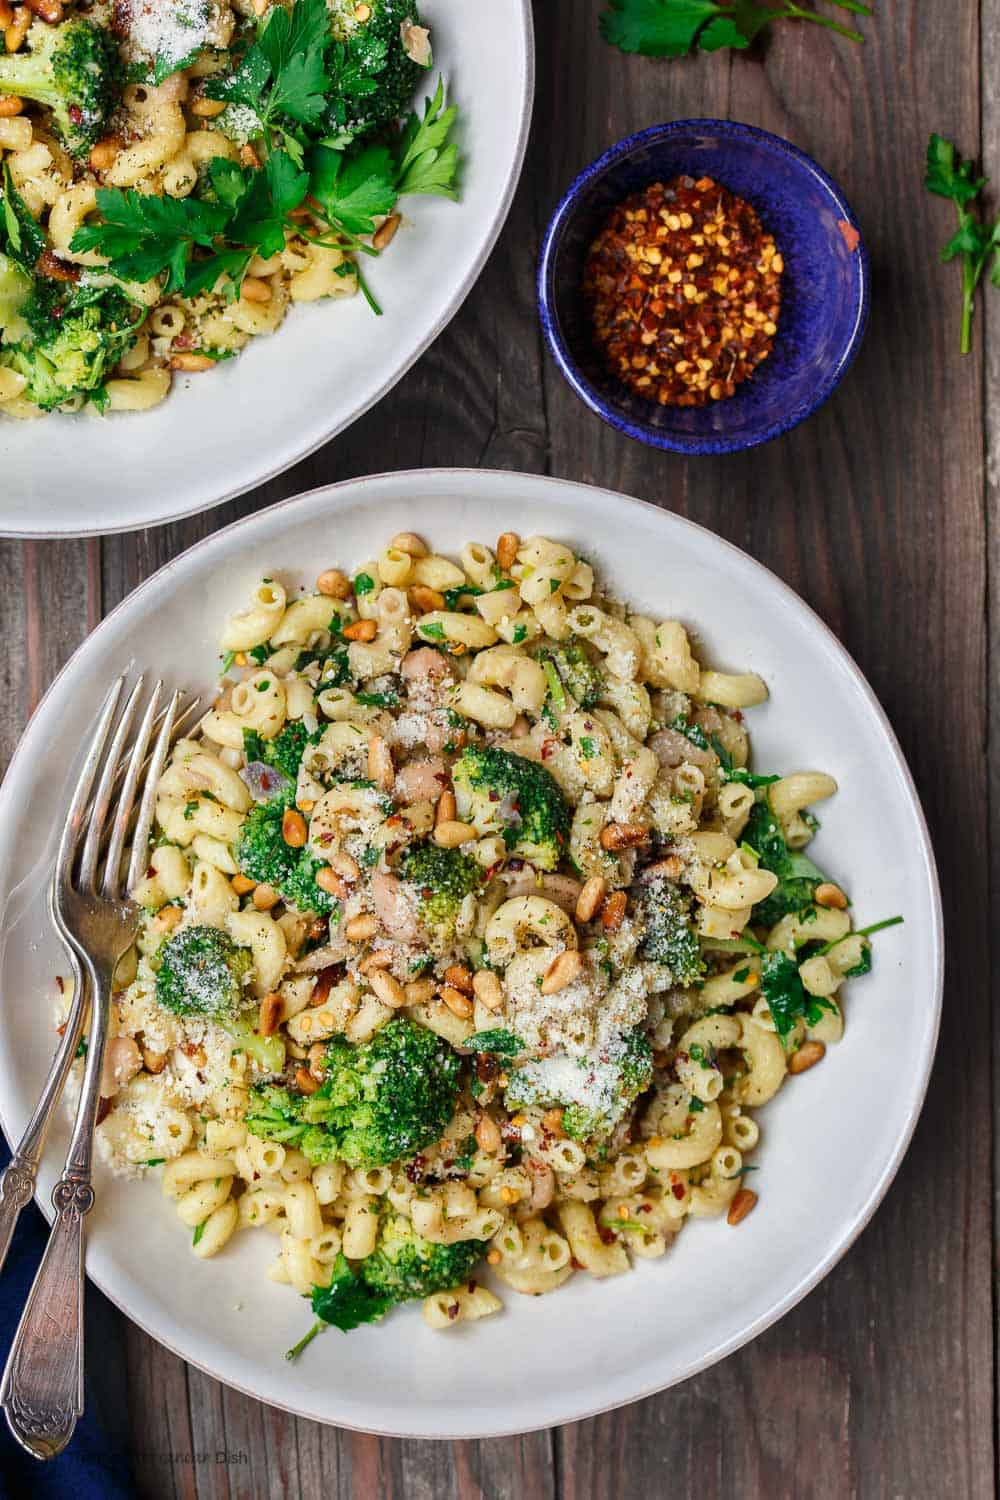 Simple, hearty Mediterranean bean and broccoli pasta. Tossed in olive oil, fresh parsley and favorite spices. A sprinkle of grated Parmesan and some toasted pine nuts seal the deal! See it on TheMediterraneanDish.com #pasta #pastadinner #mediterraneandiet #healthyrecipes #comfortfood #onepotpasta #onepot